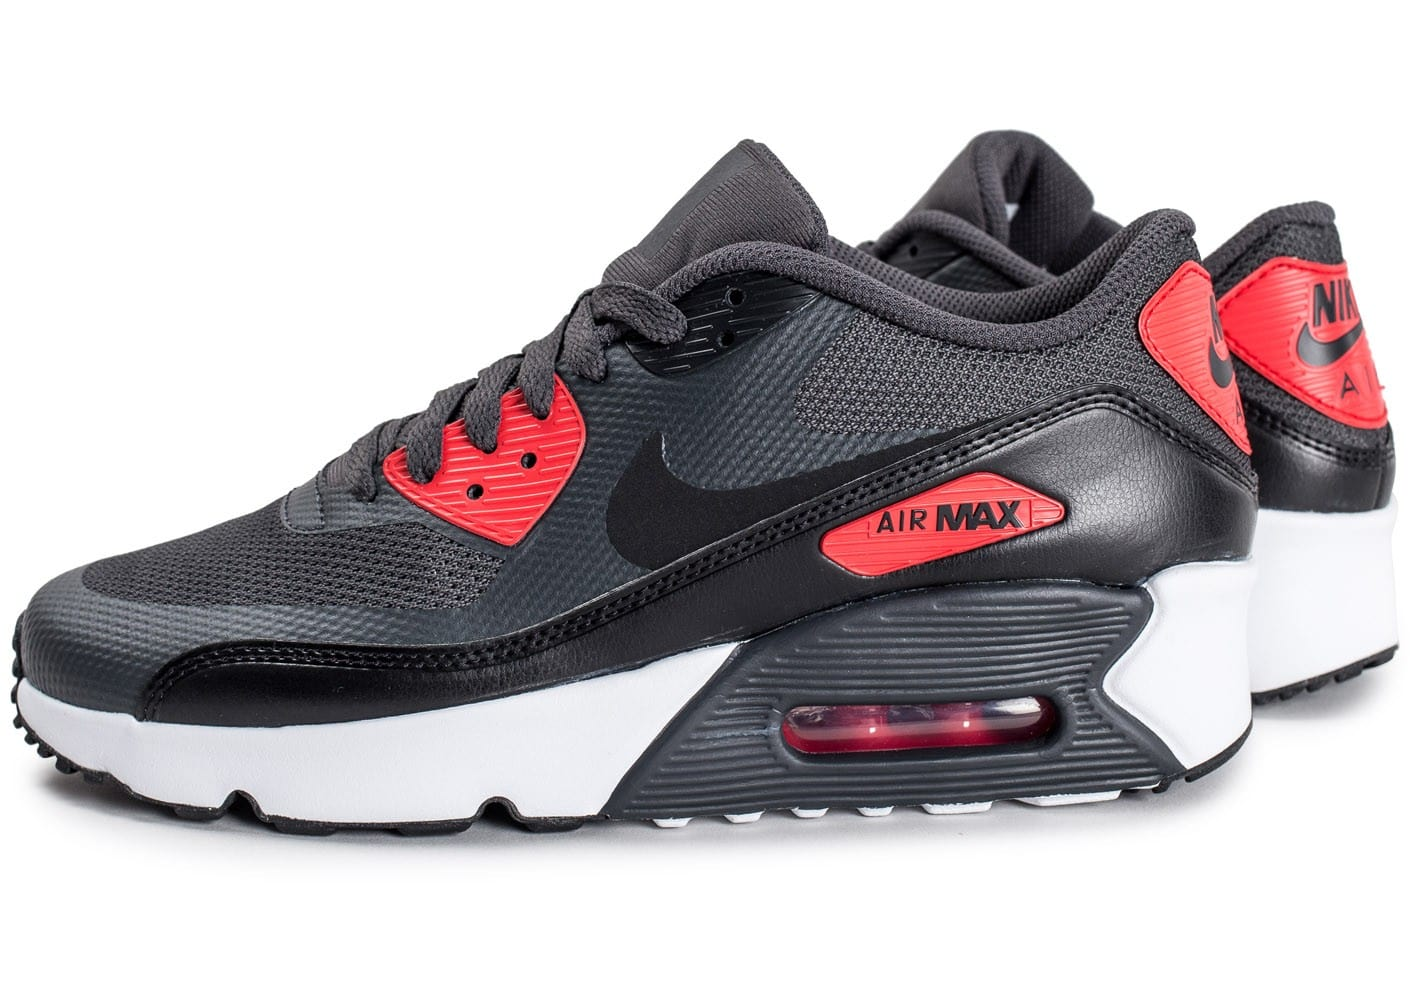 soldes nike air max 90 ultra 2 0 junior anthracite et rouge chaussures toutes les baskets. Black Bedroom Furniture Sets. Home Design Ideas